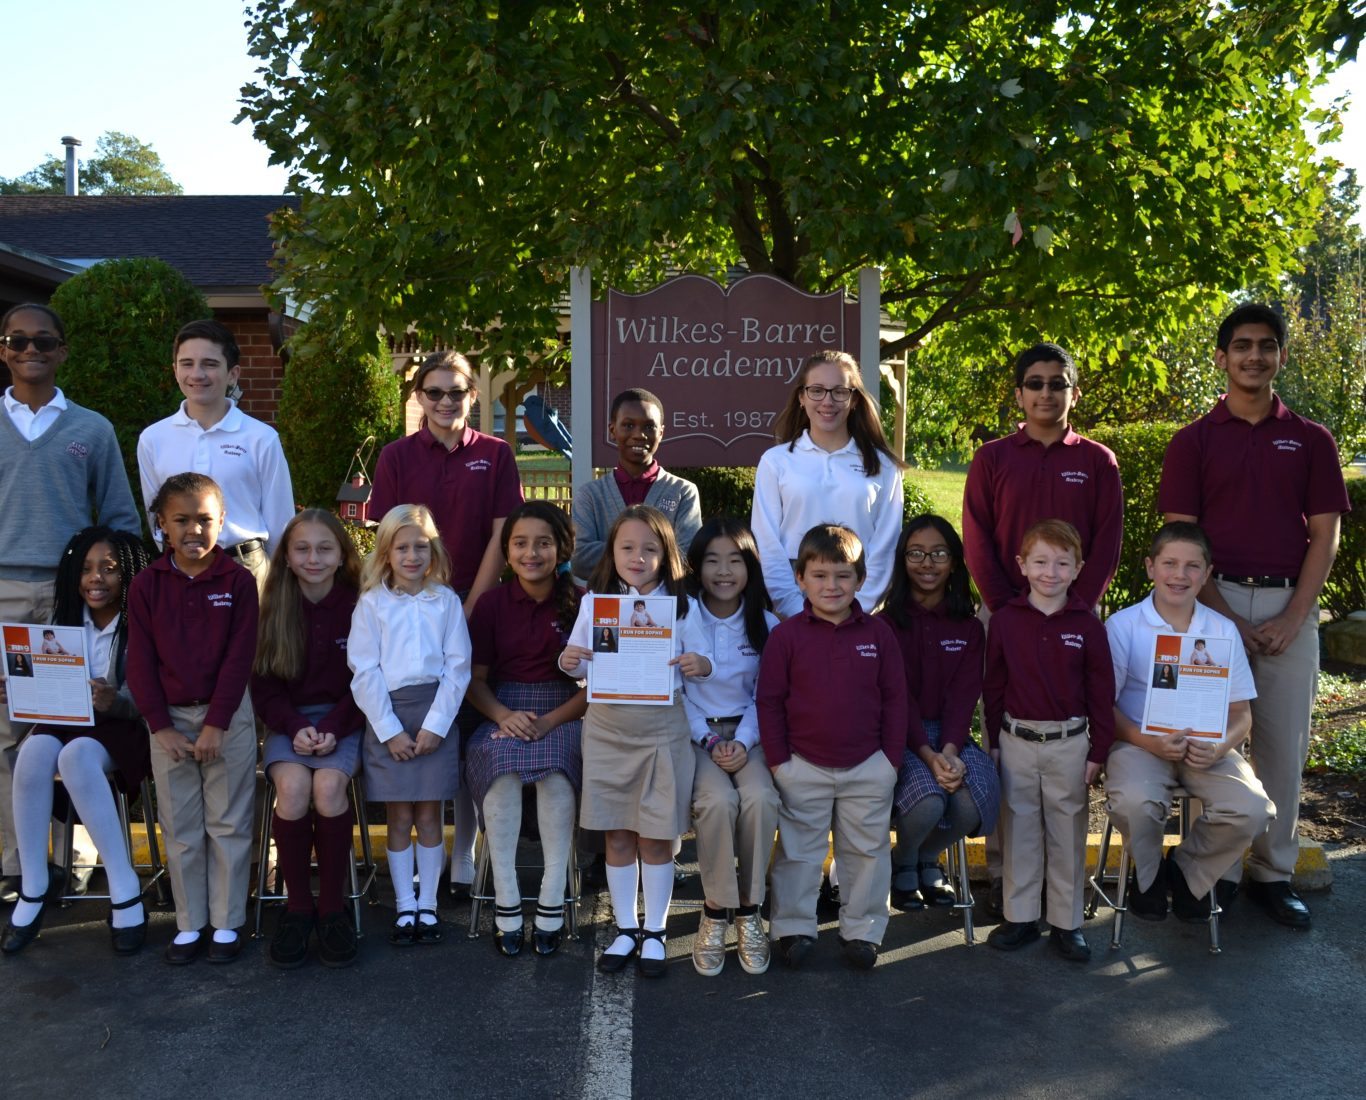 Wilkes Barre Academy students pose in front of school sign